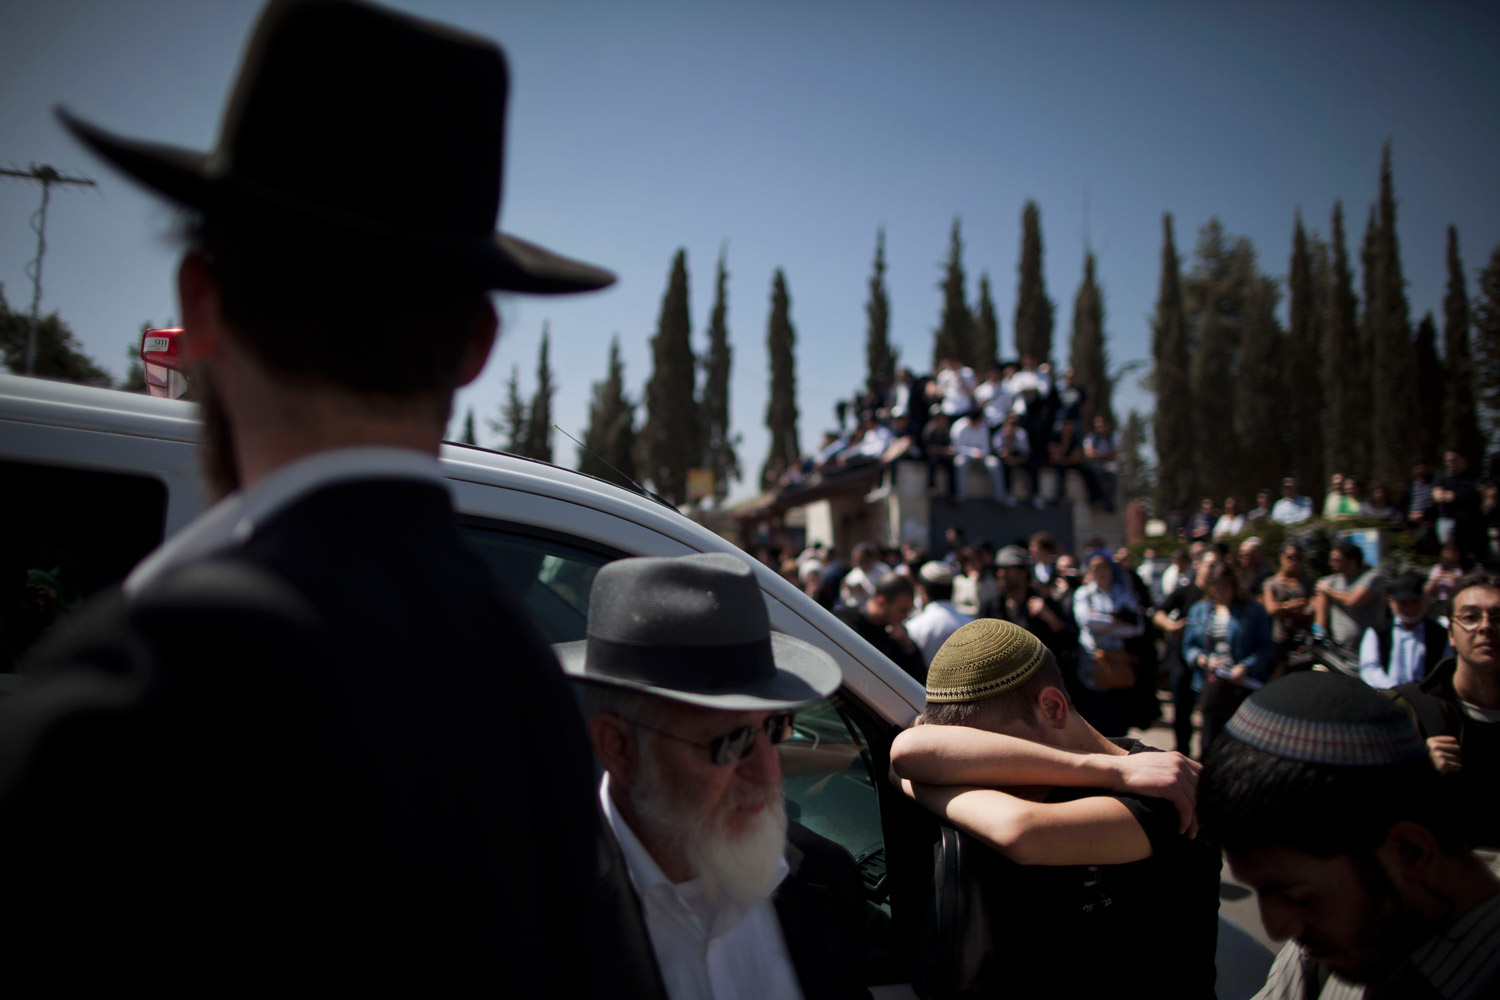 March 21, 2012. At a cemetery in Jerusalem, family members and Israelis react during a funeral for the victims of a school shooting in Toulouse, France.